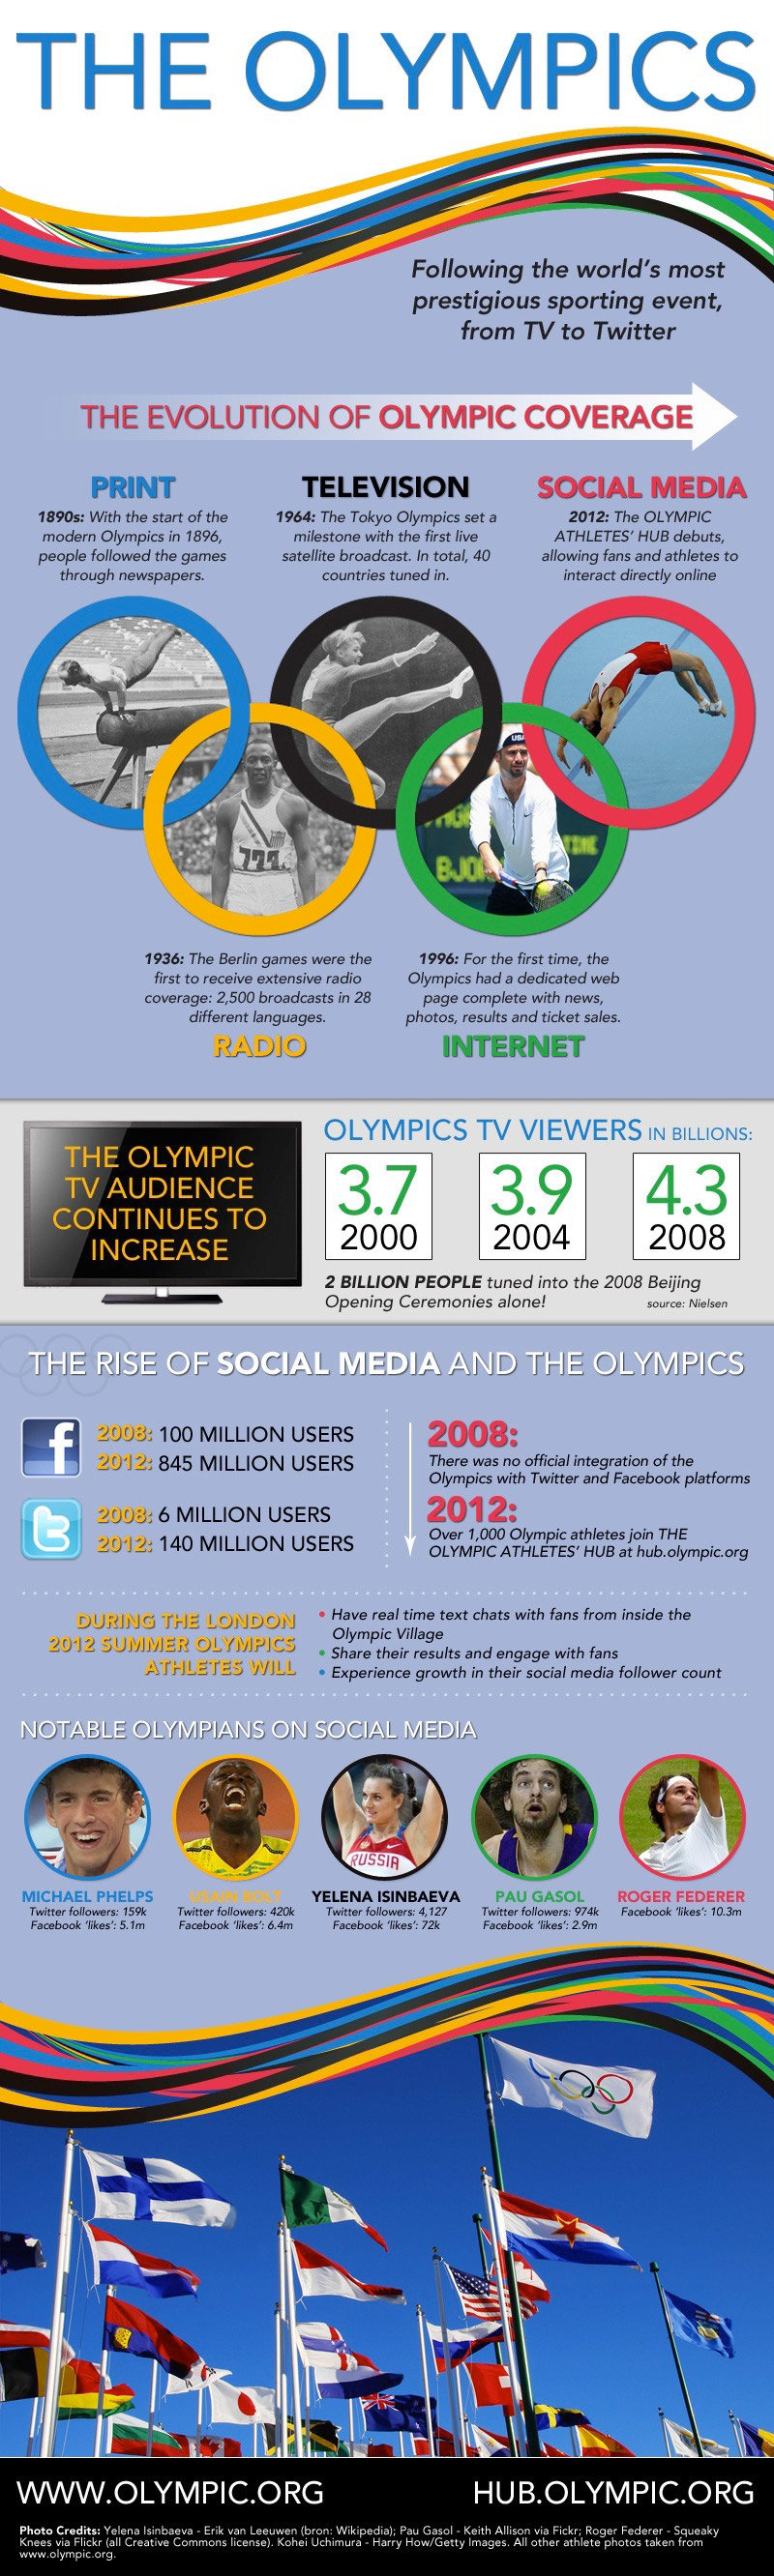 the olympics #infographic